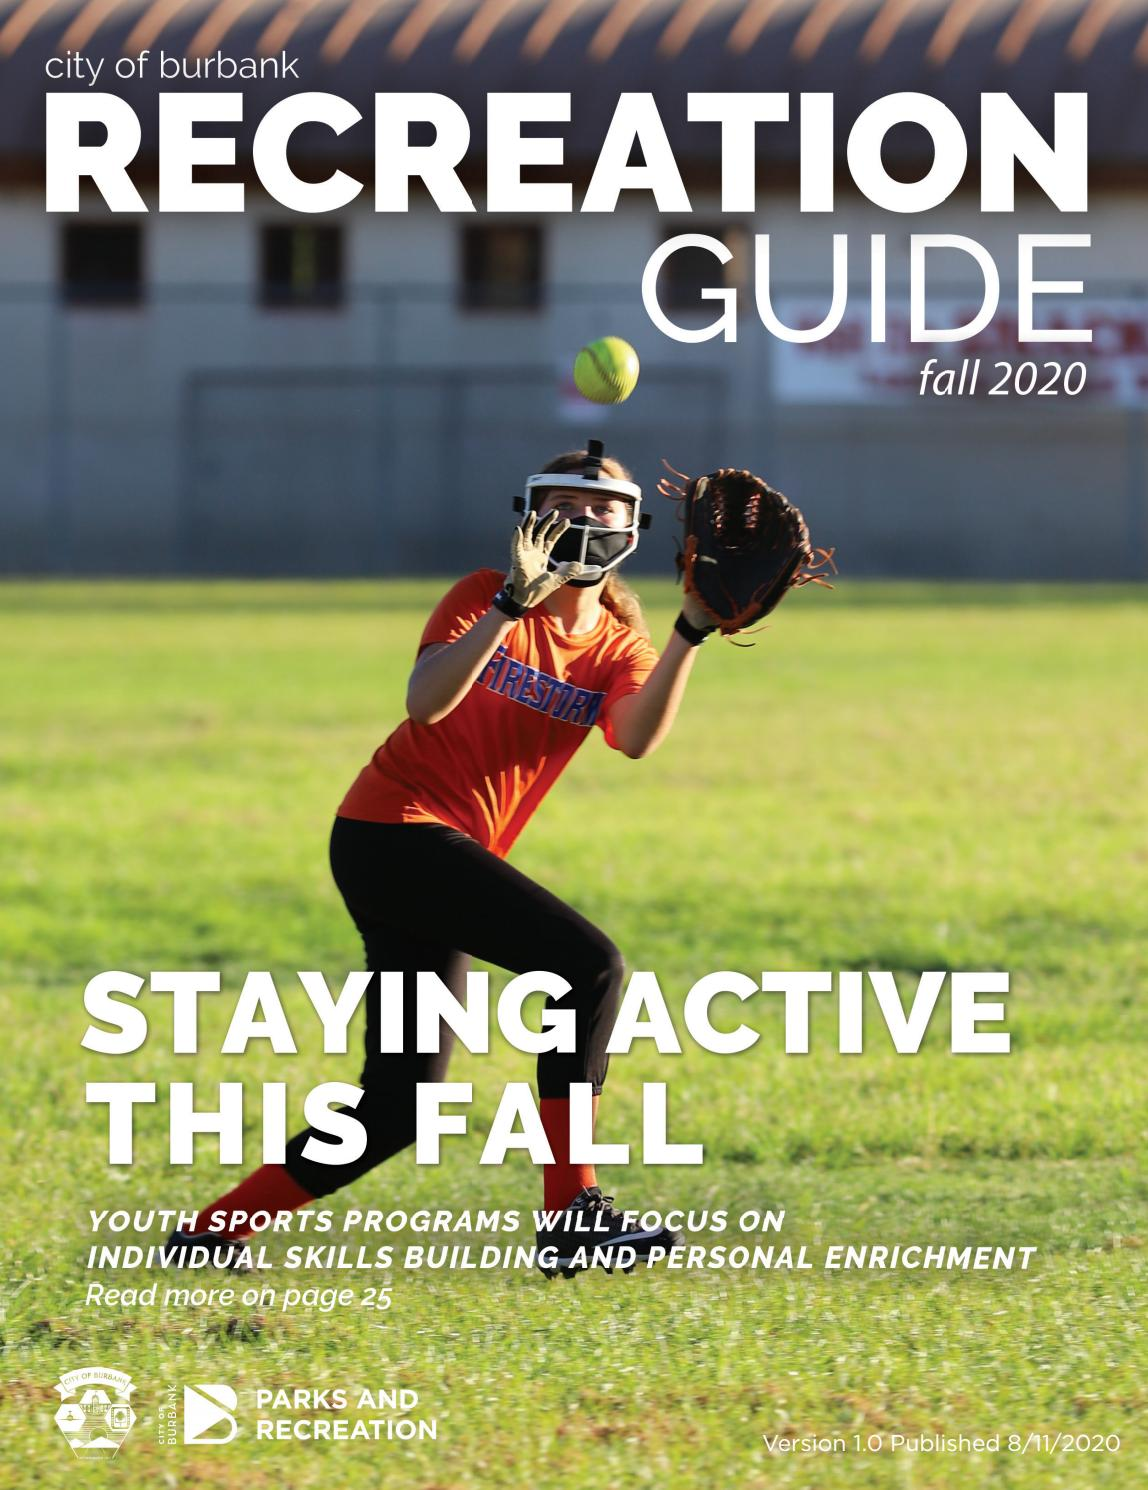 Fall 2020 Recreation Guide By Burbank Parks And Recreation Issuu